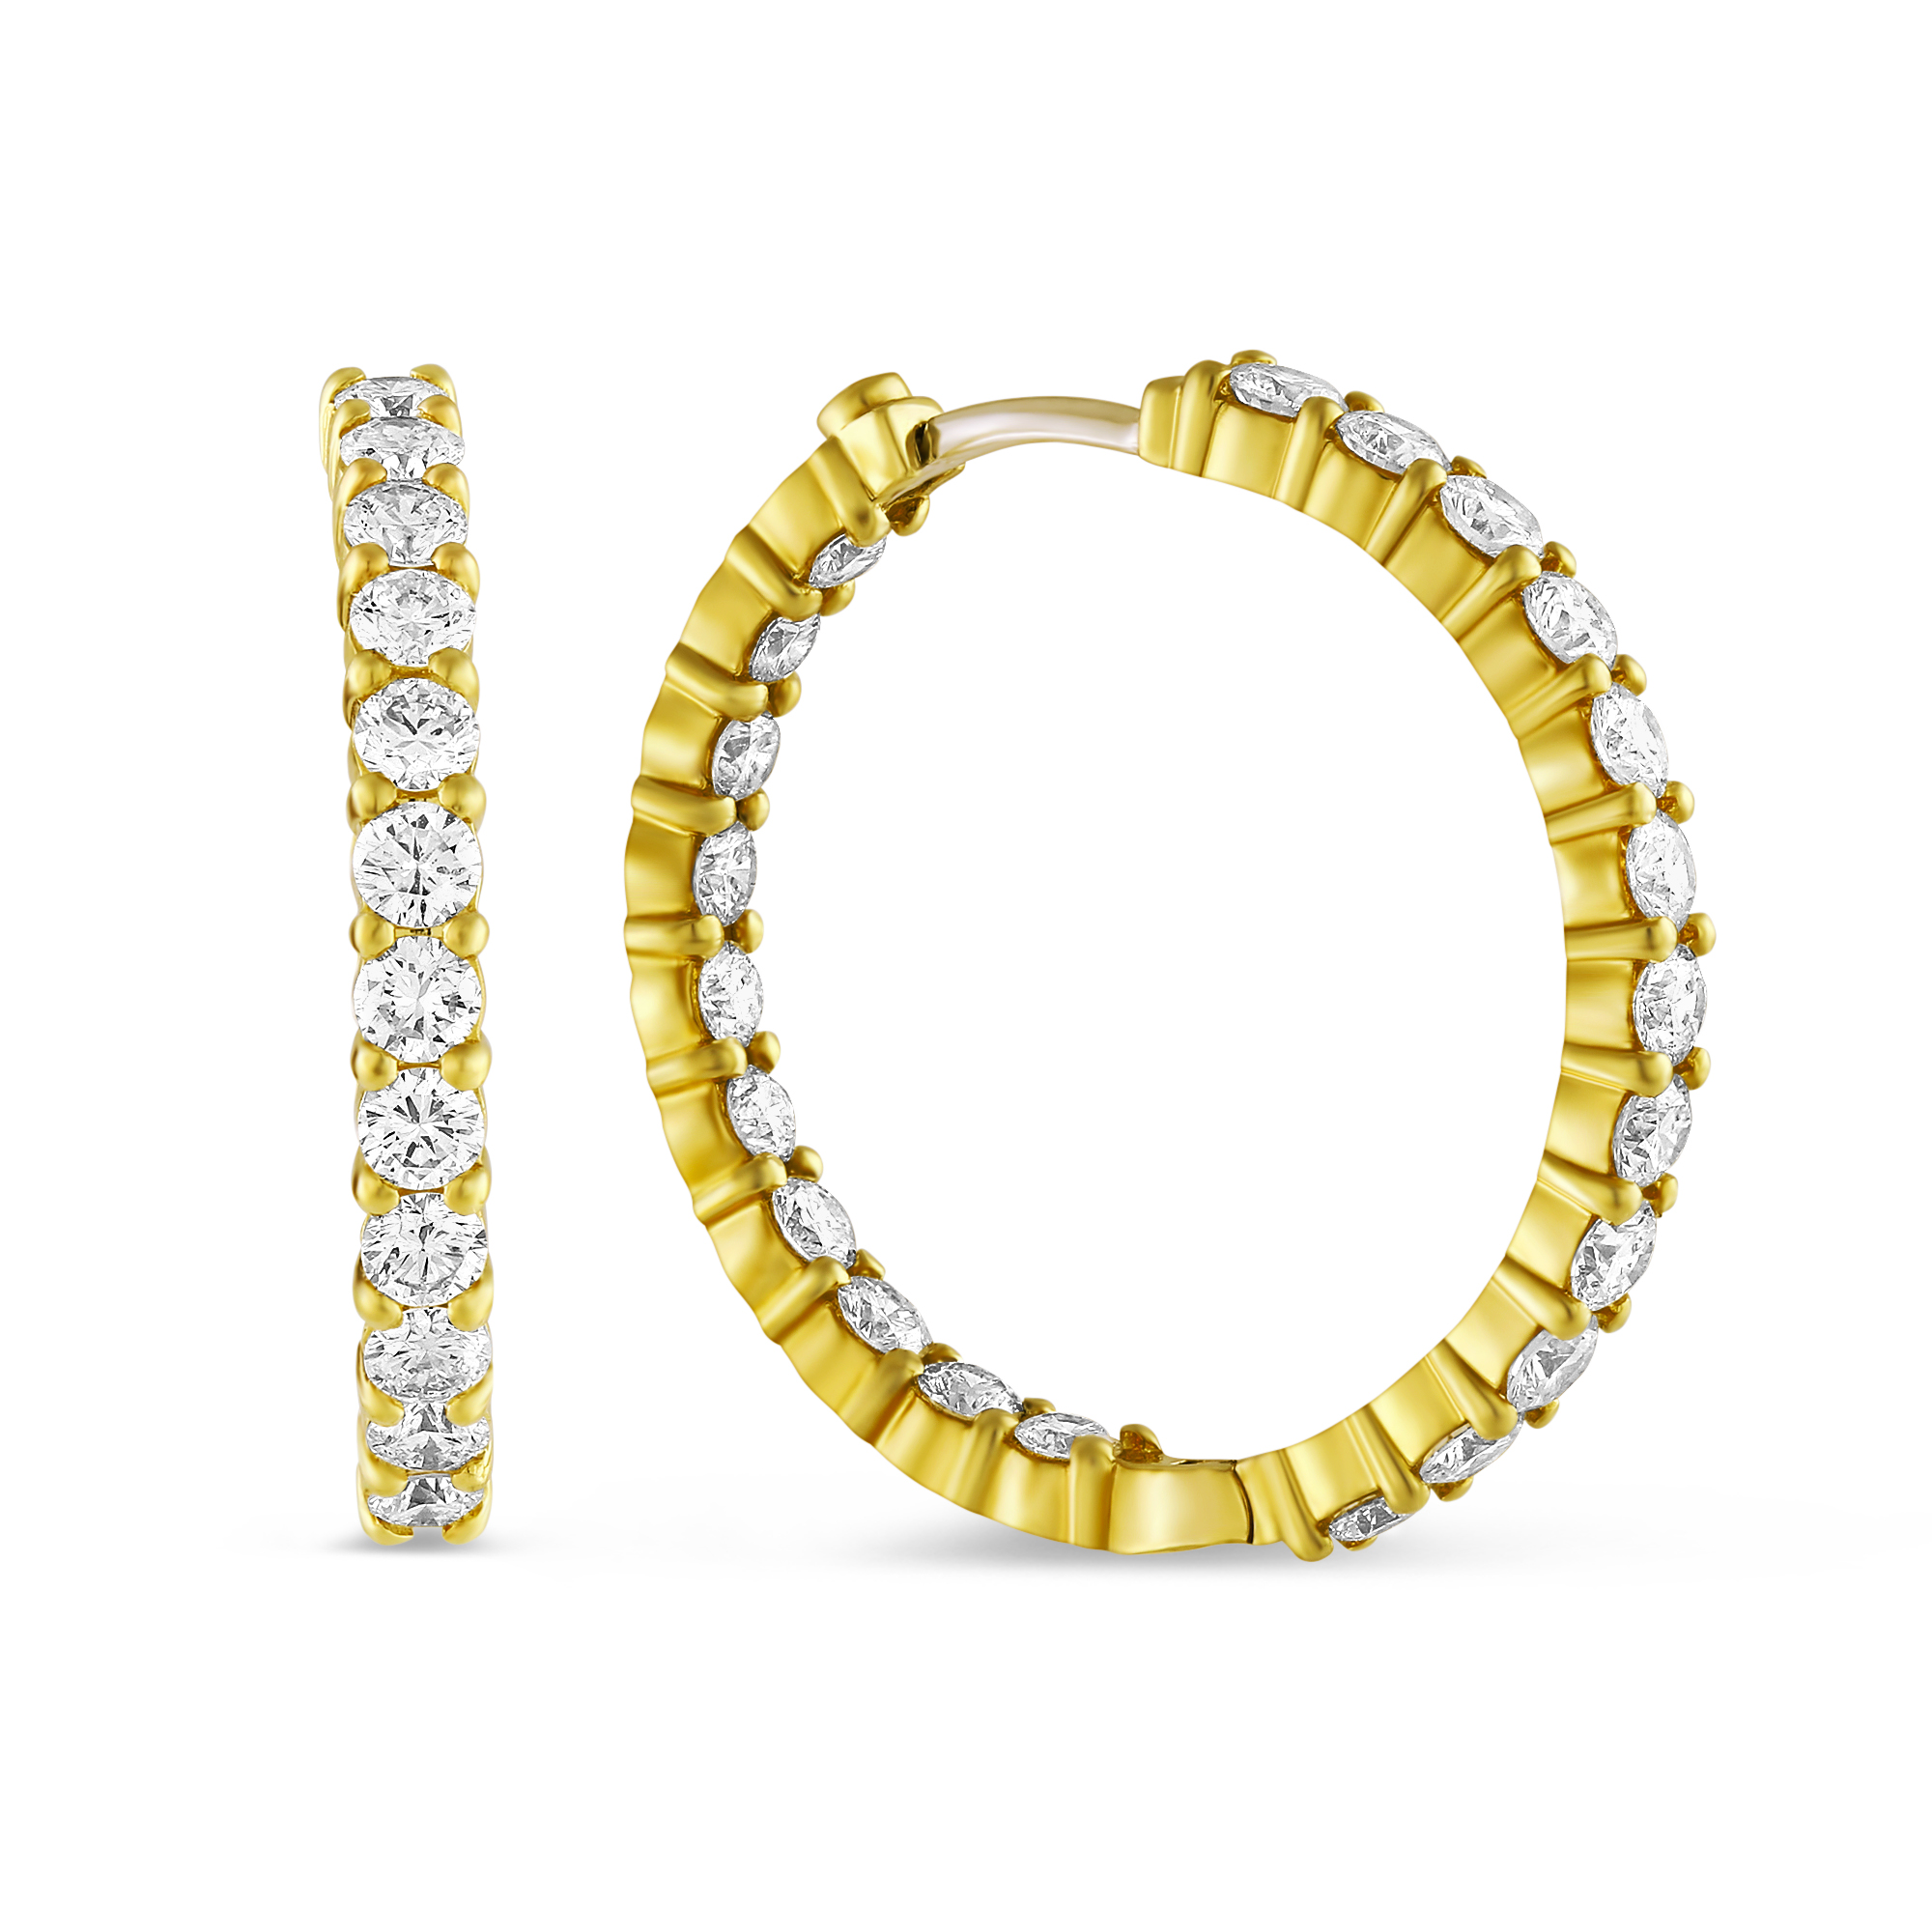 Roberto Coin Large Yellow Gold Inside Outside Diamond Hoop Earrings 3 43 Cttw